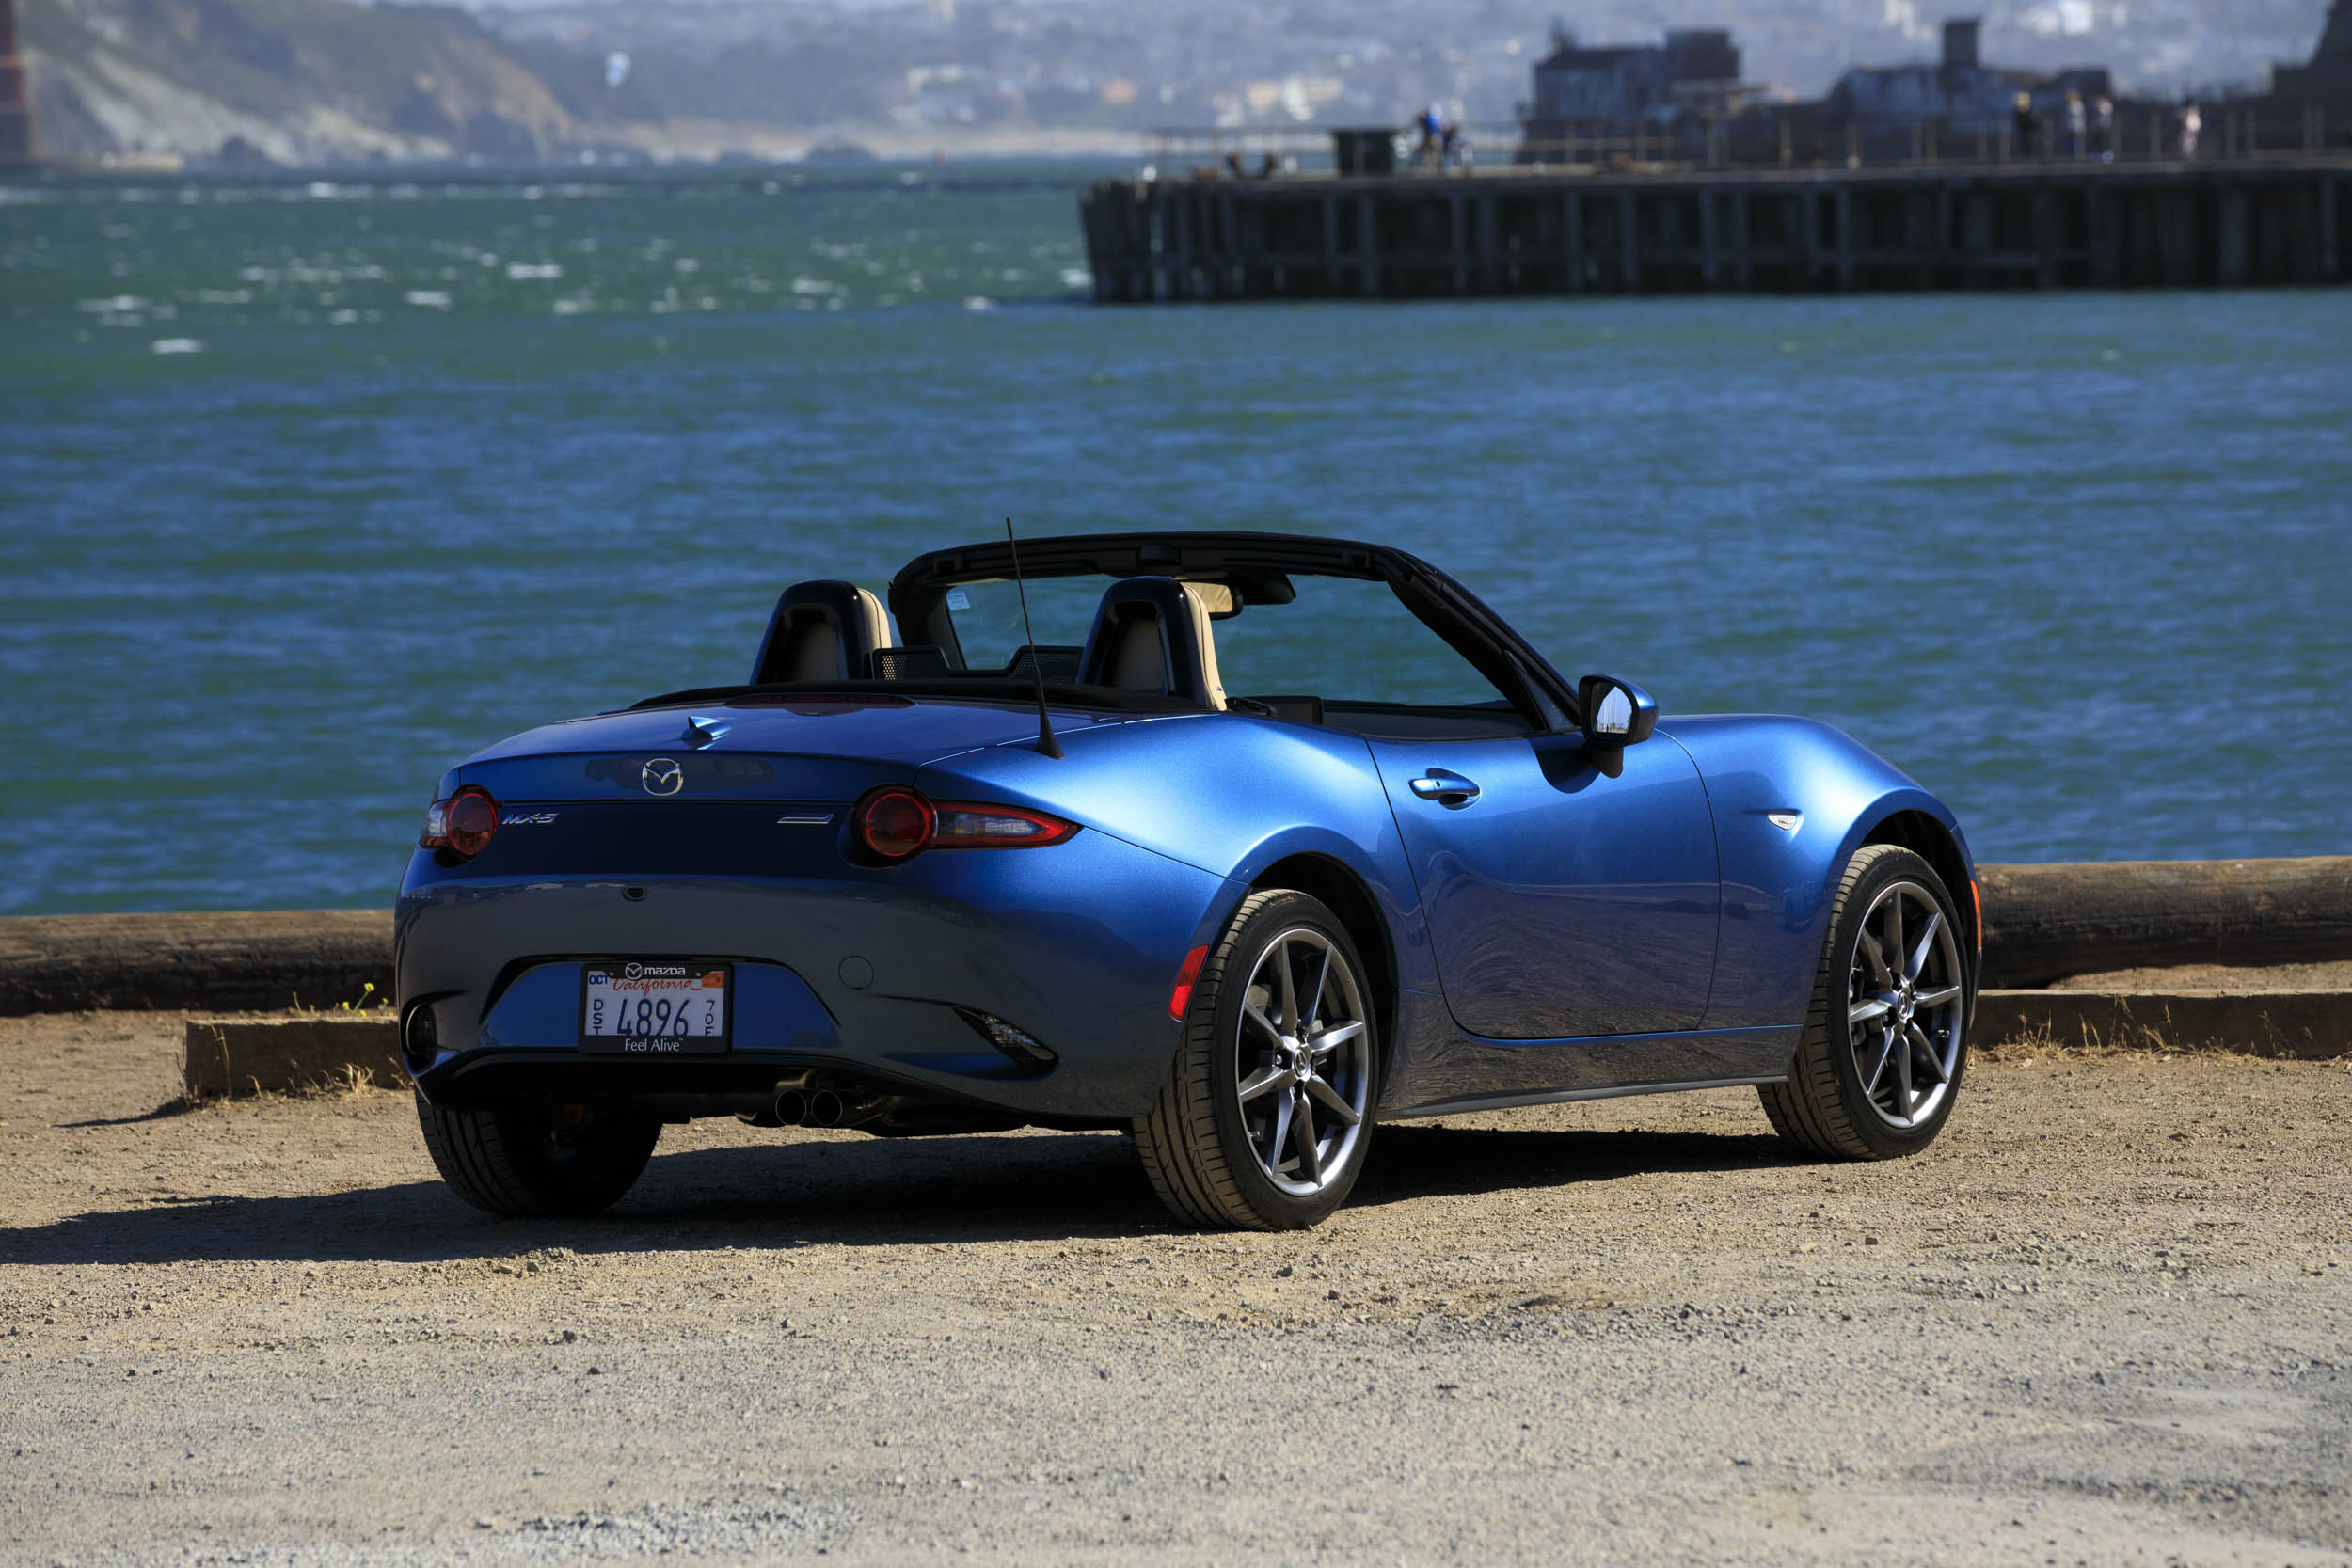 2019 Mazda MX-5 Miata Roadster rear 3/4 on the coast